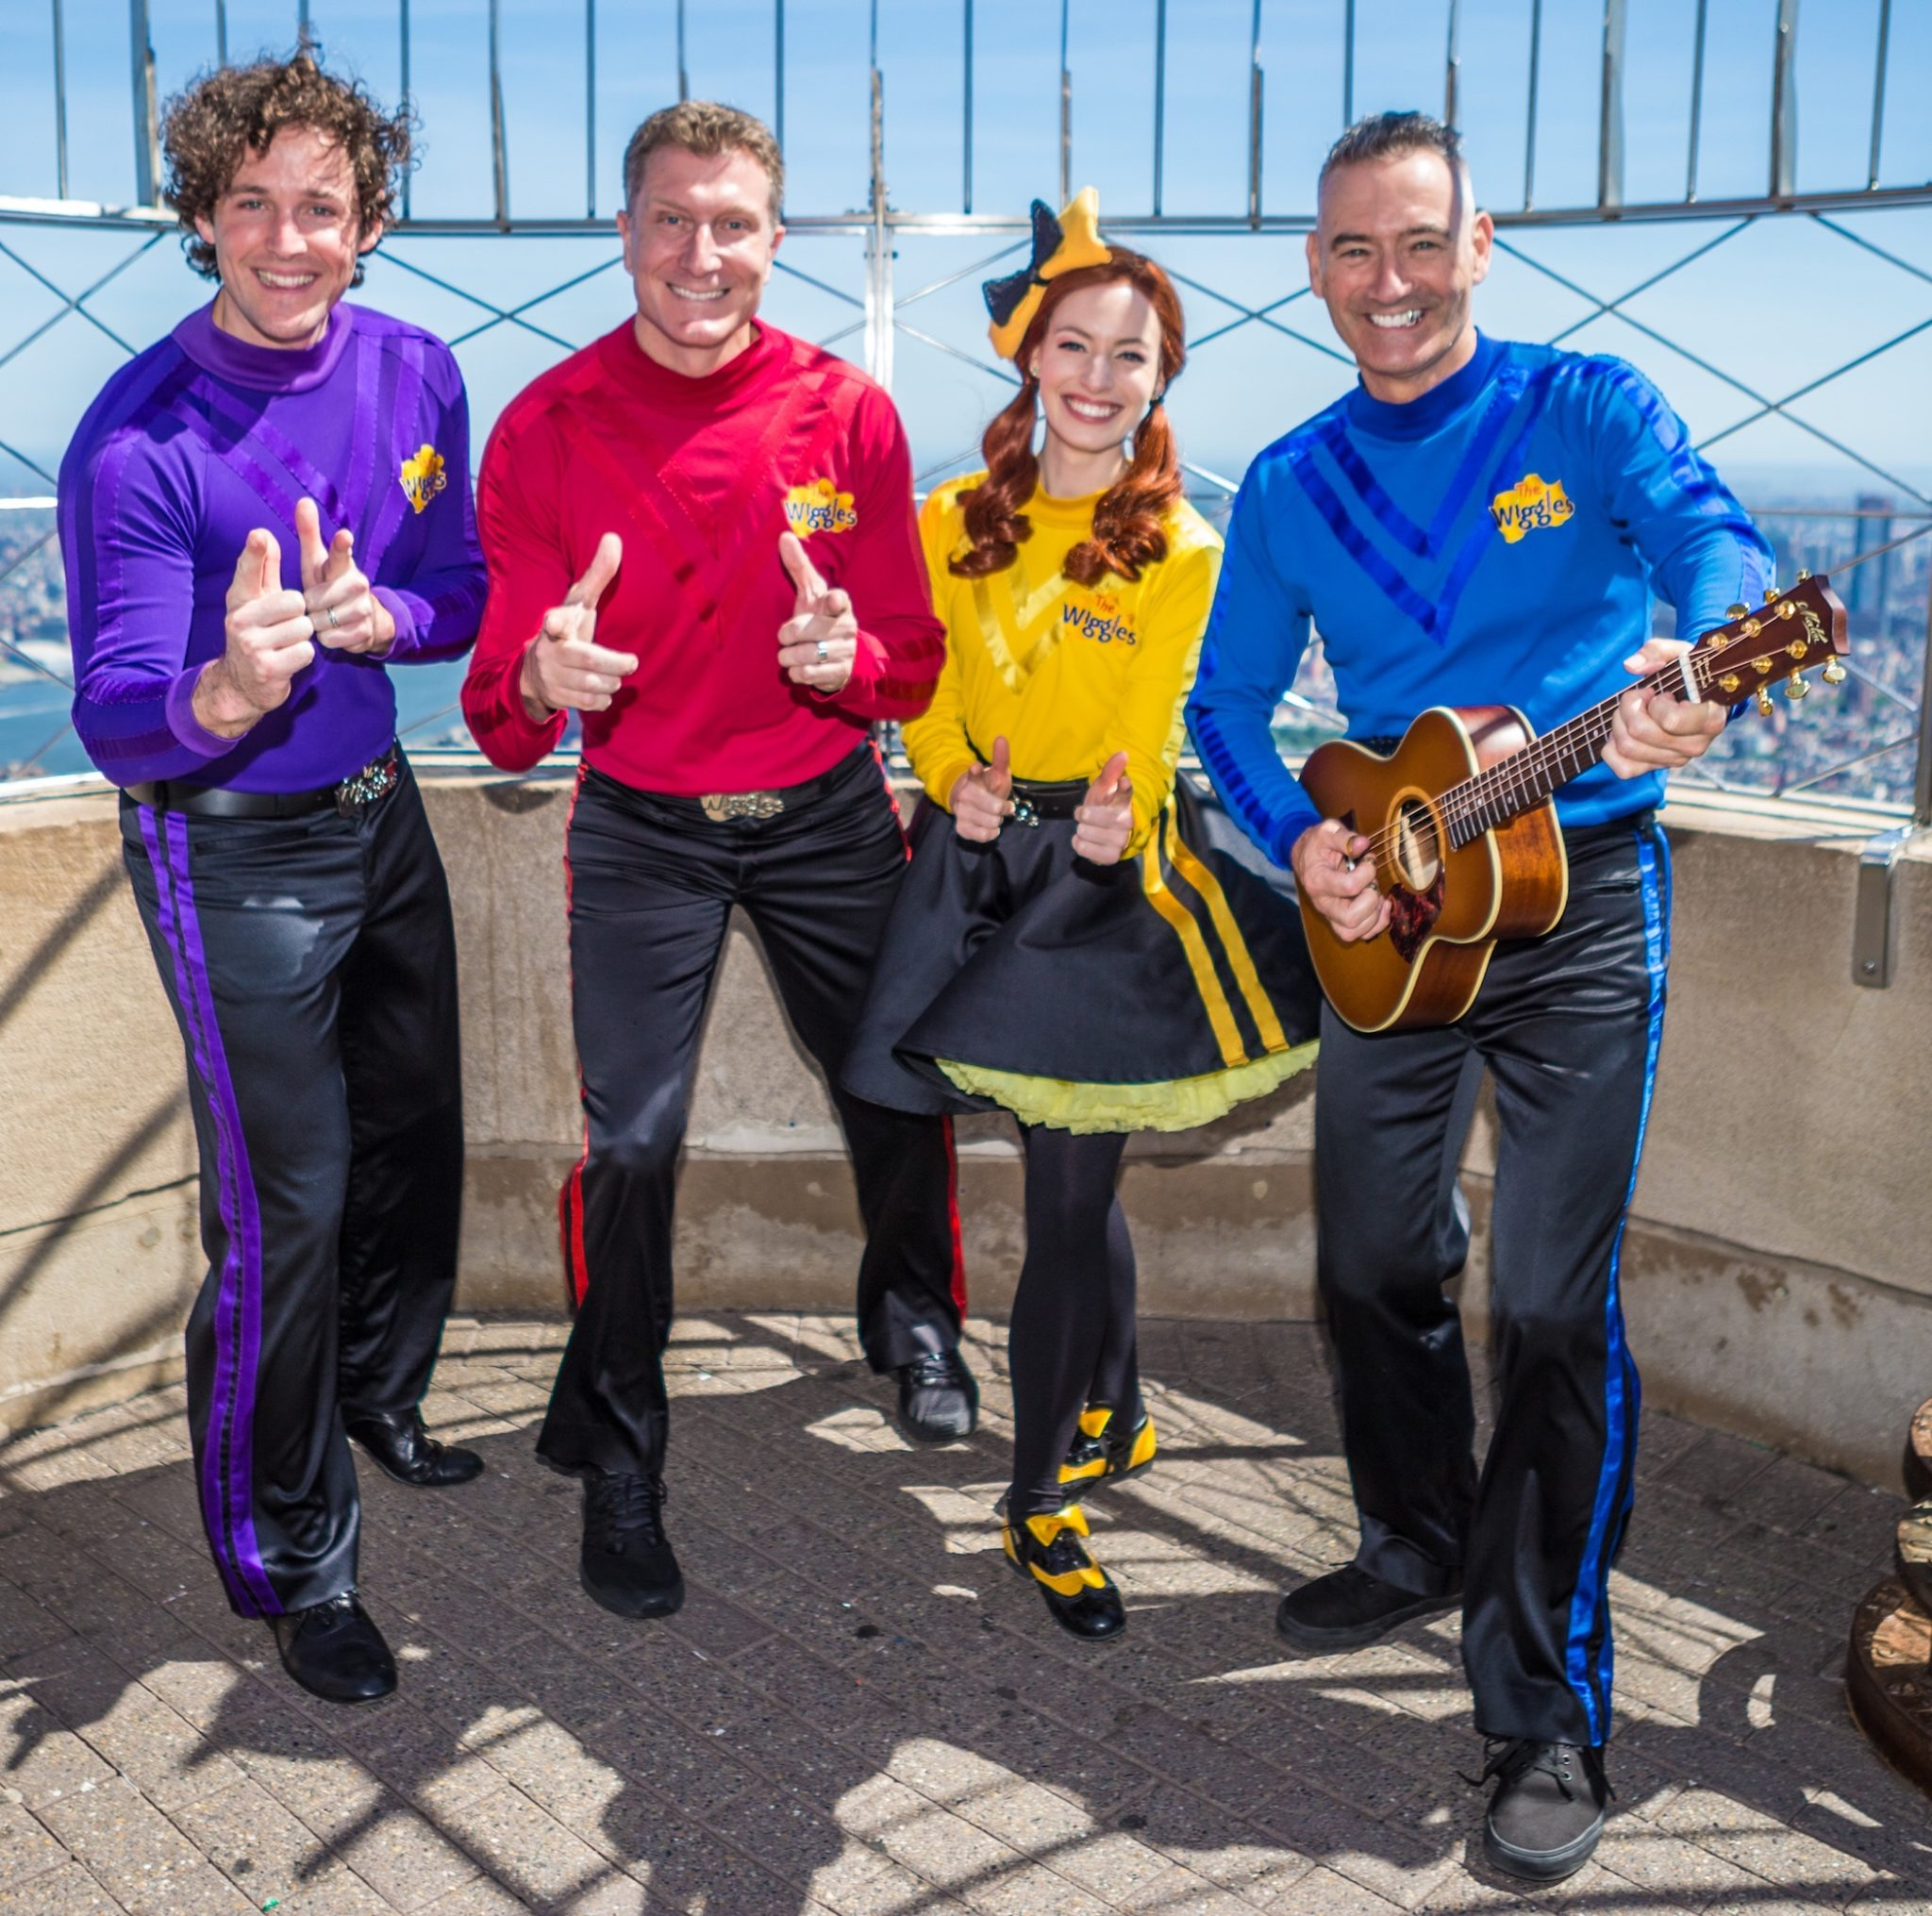 The Wiggles: Party Time Tour